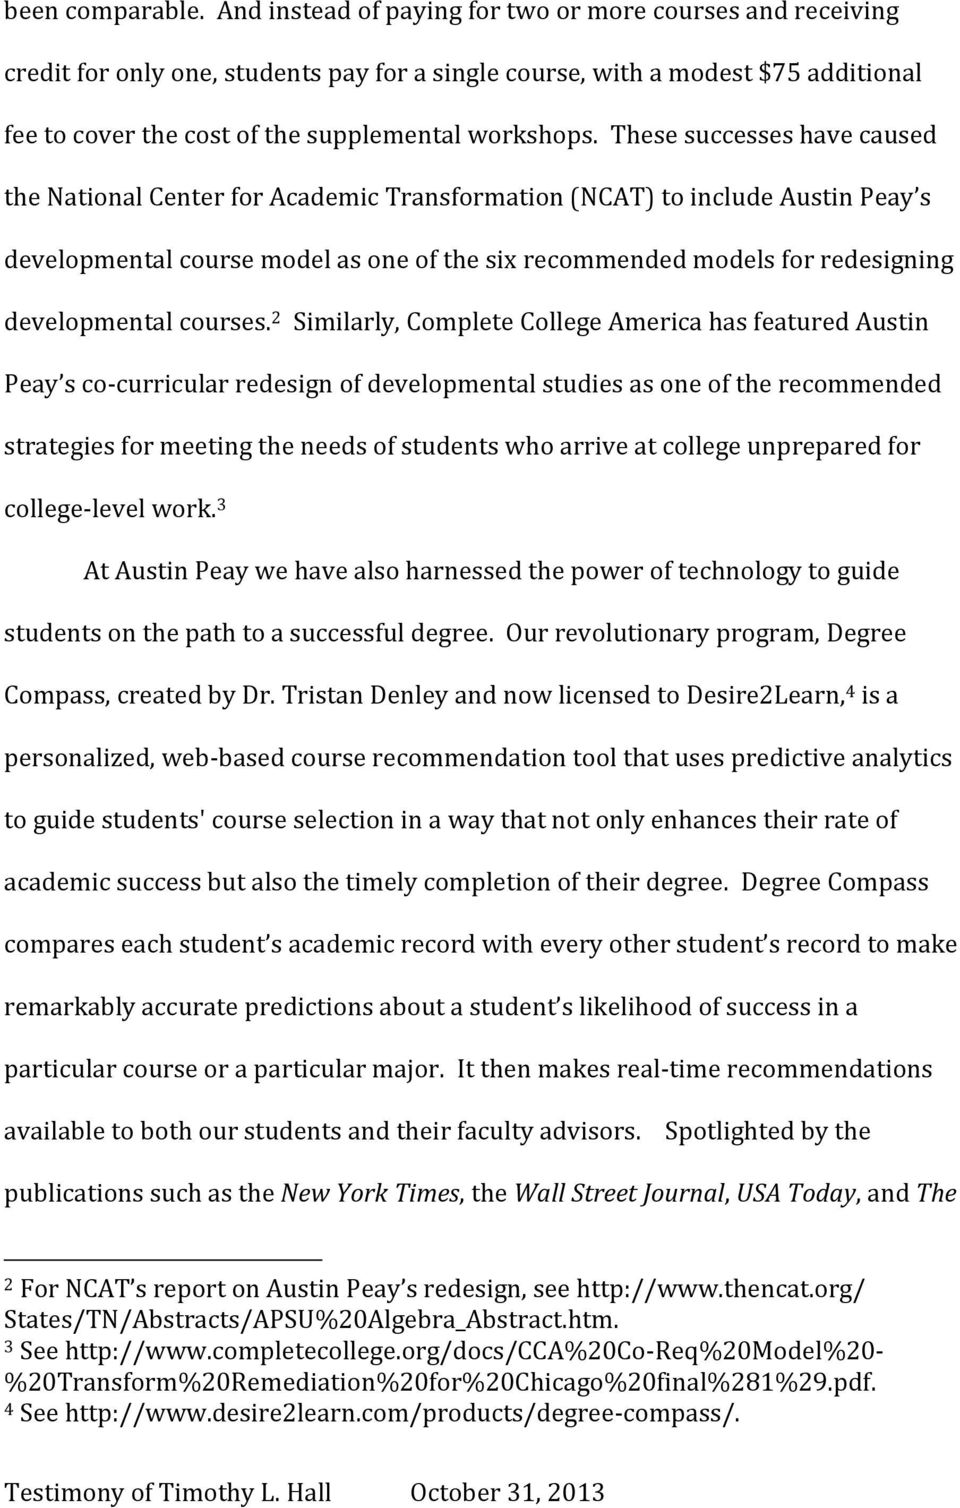 These successes have caused the National Center for Academic Transformation (NCAT) to include Austin Peay s developmental course model as one of the six recommended models for redesigning